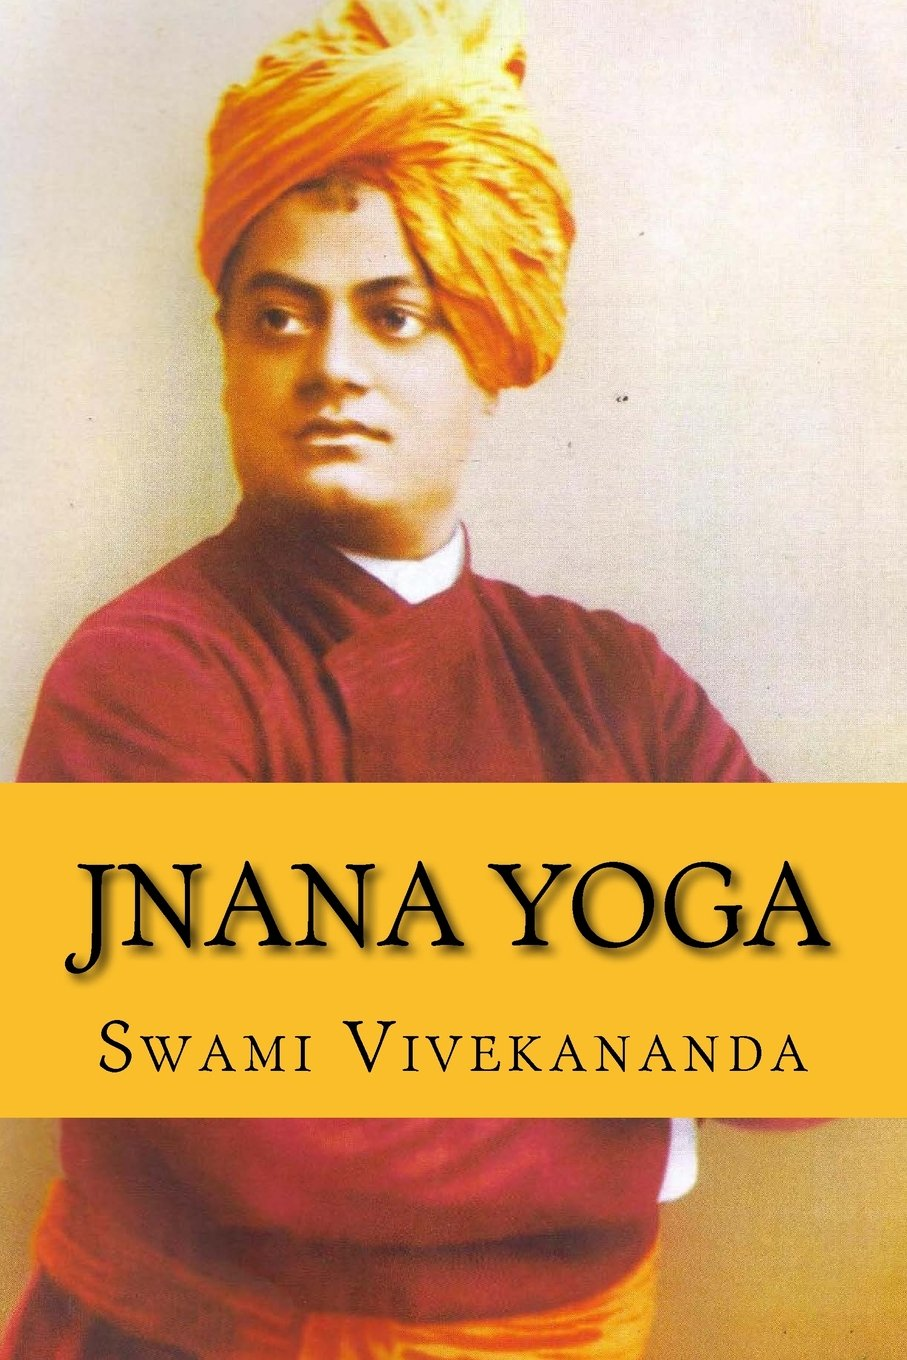 Jnana Yoga: Swami Vivekananda: 9781986248655: Amazon.com: Books